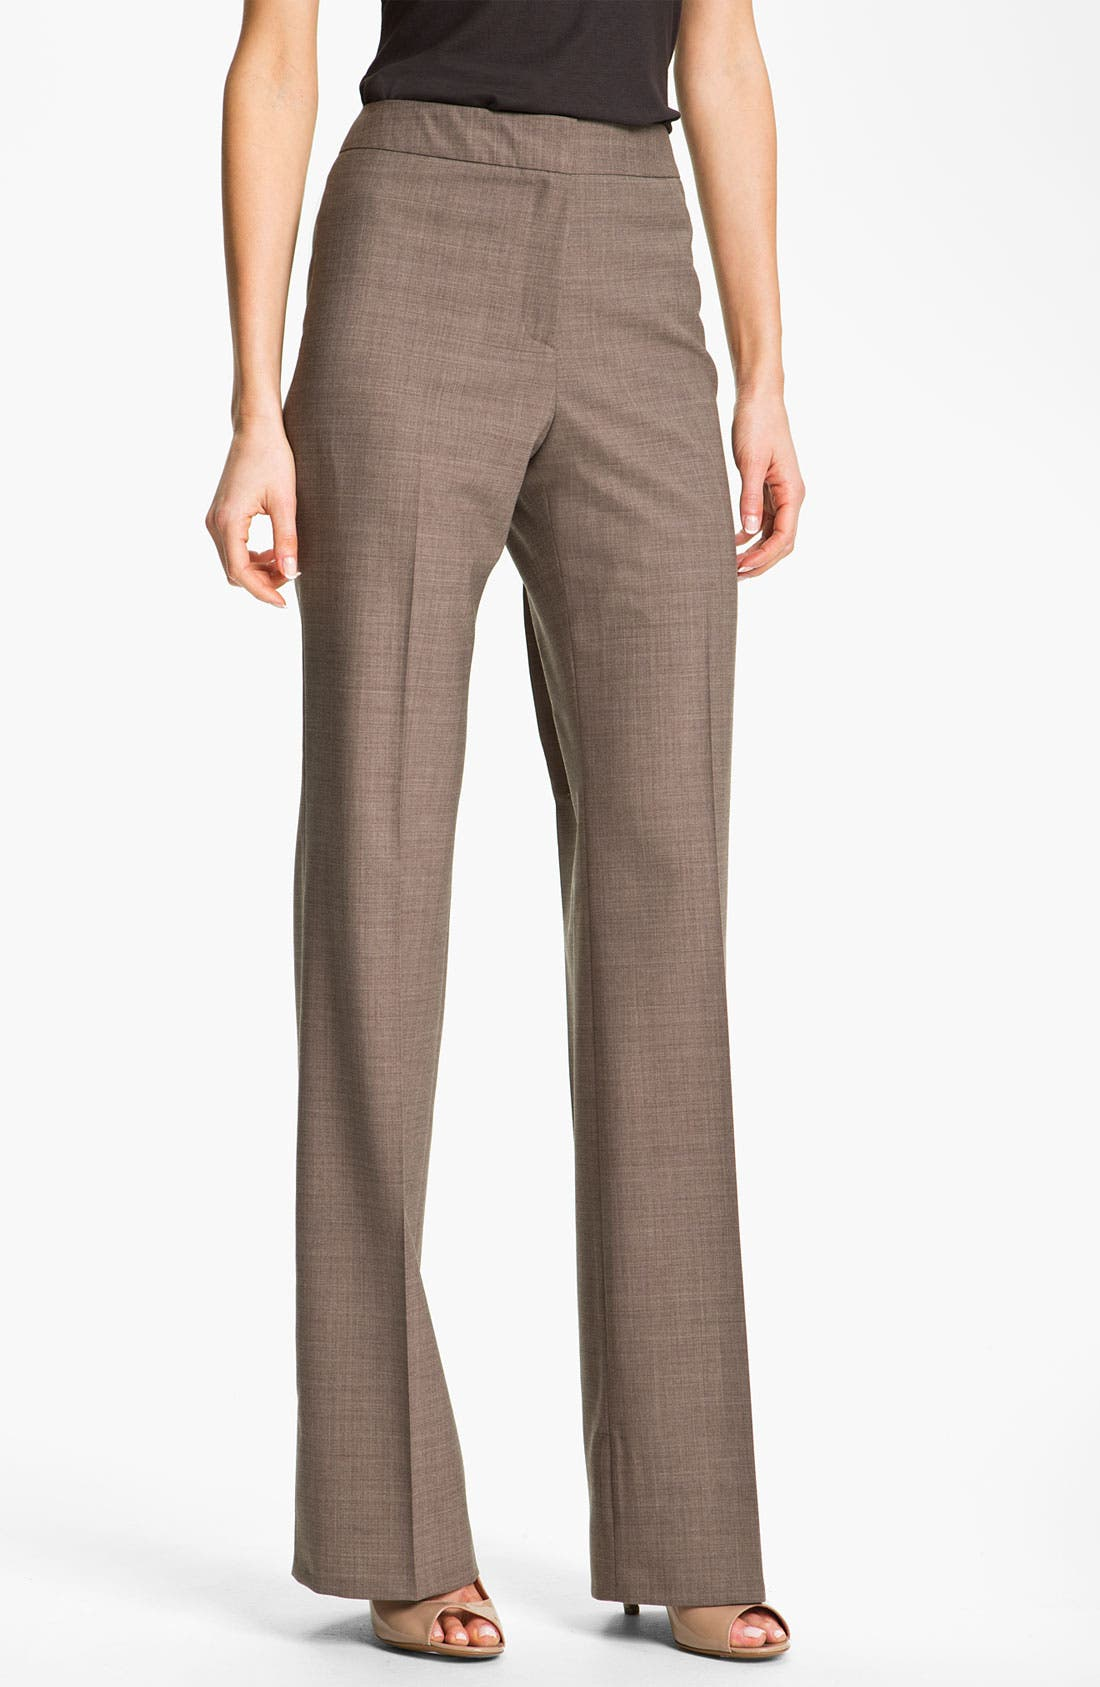 Alternate Image 1 Selected - Santorelli 'Mara' Stretch Wool Pants